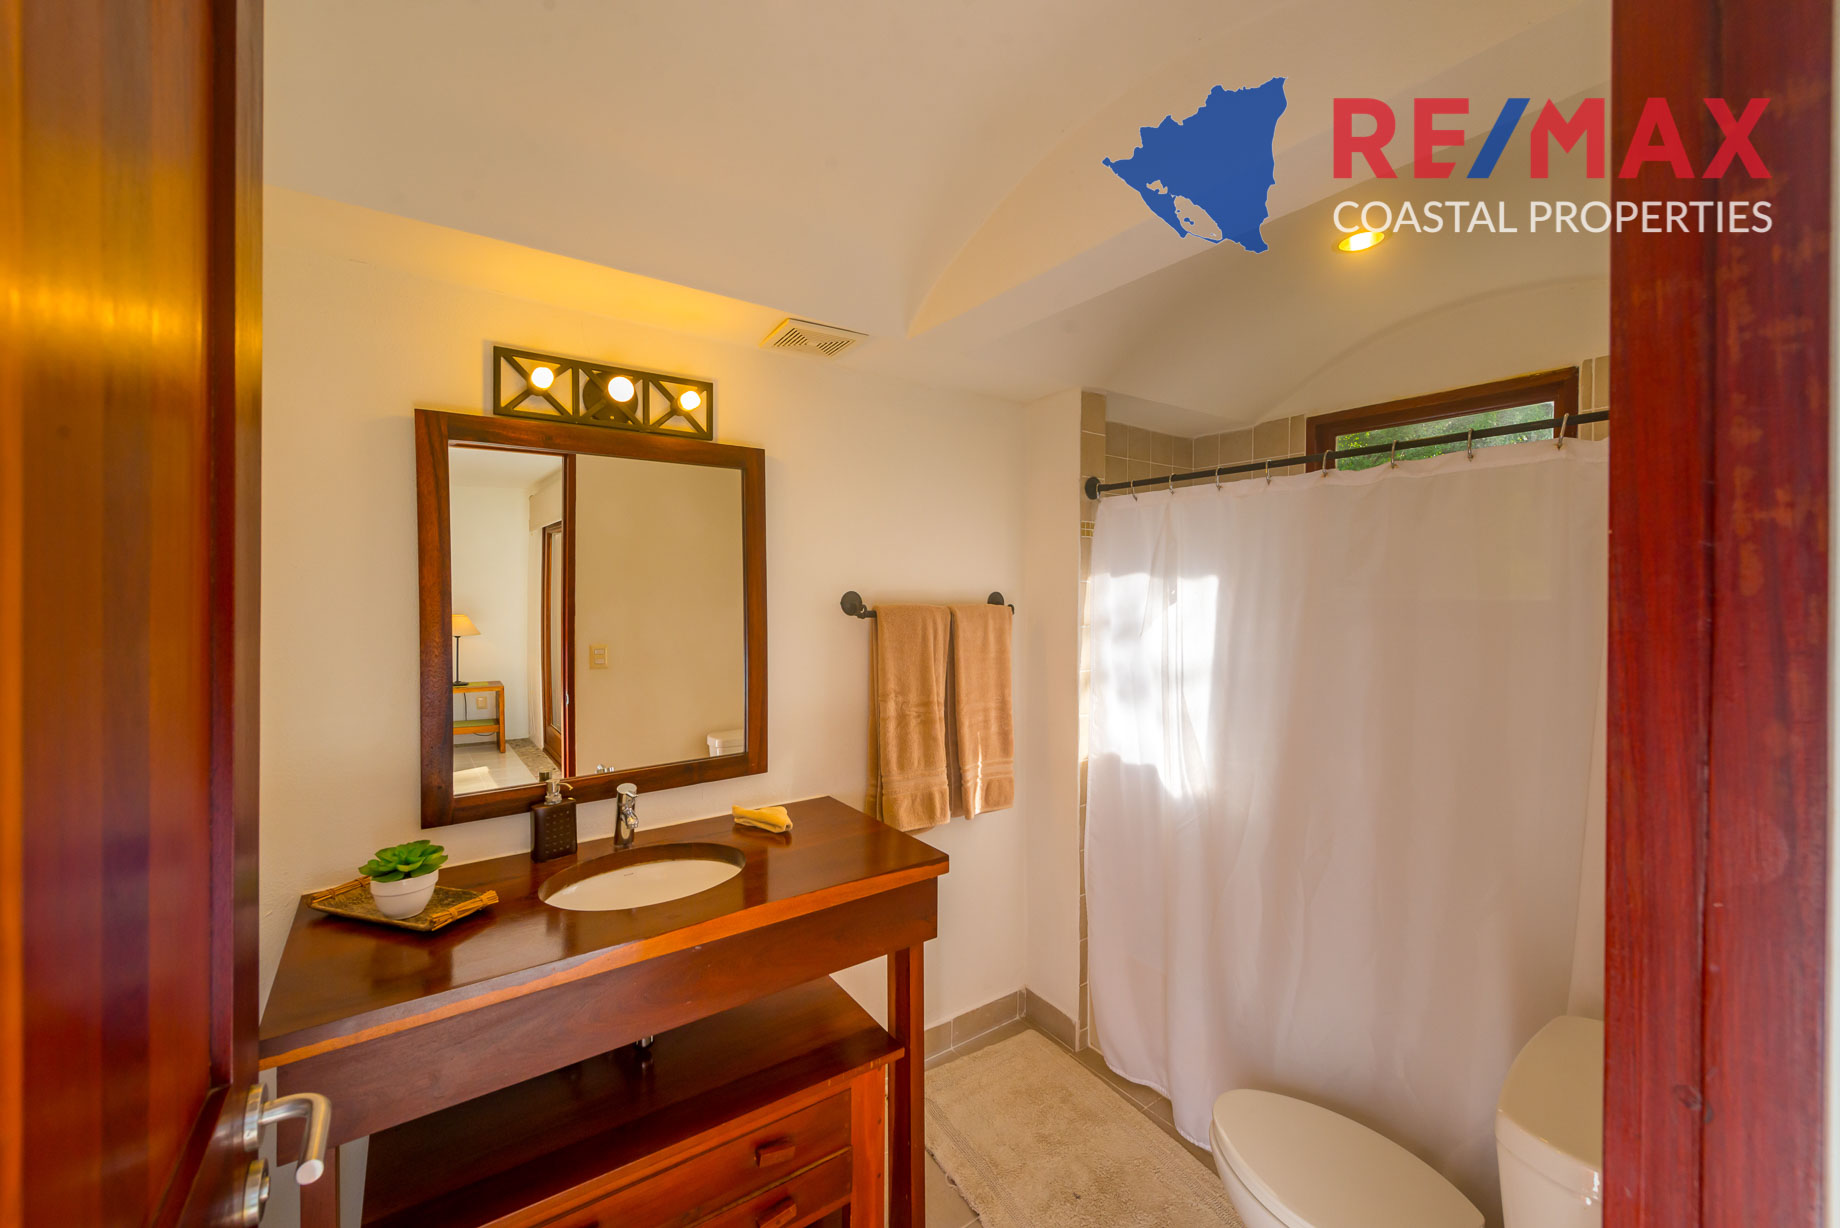 https://property-nicaragua.com/pedrodev/wp-content/uploads/2012/06/Playa-Coco-Townhome-2-REMAX-Coastal-Properties-24.jpg